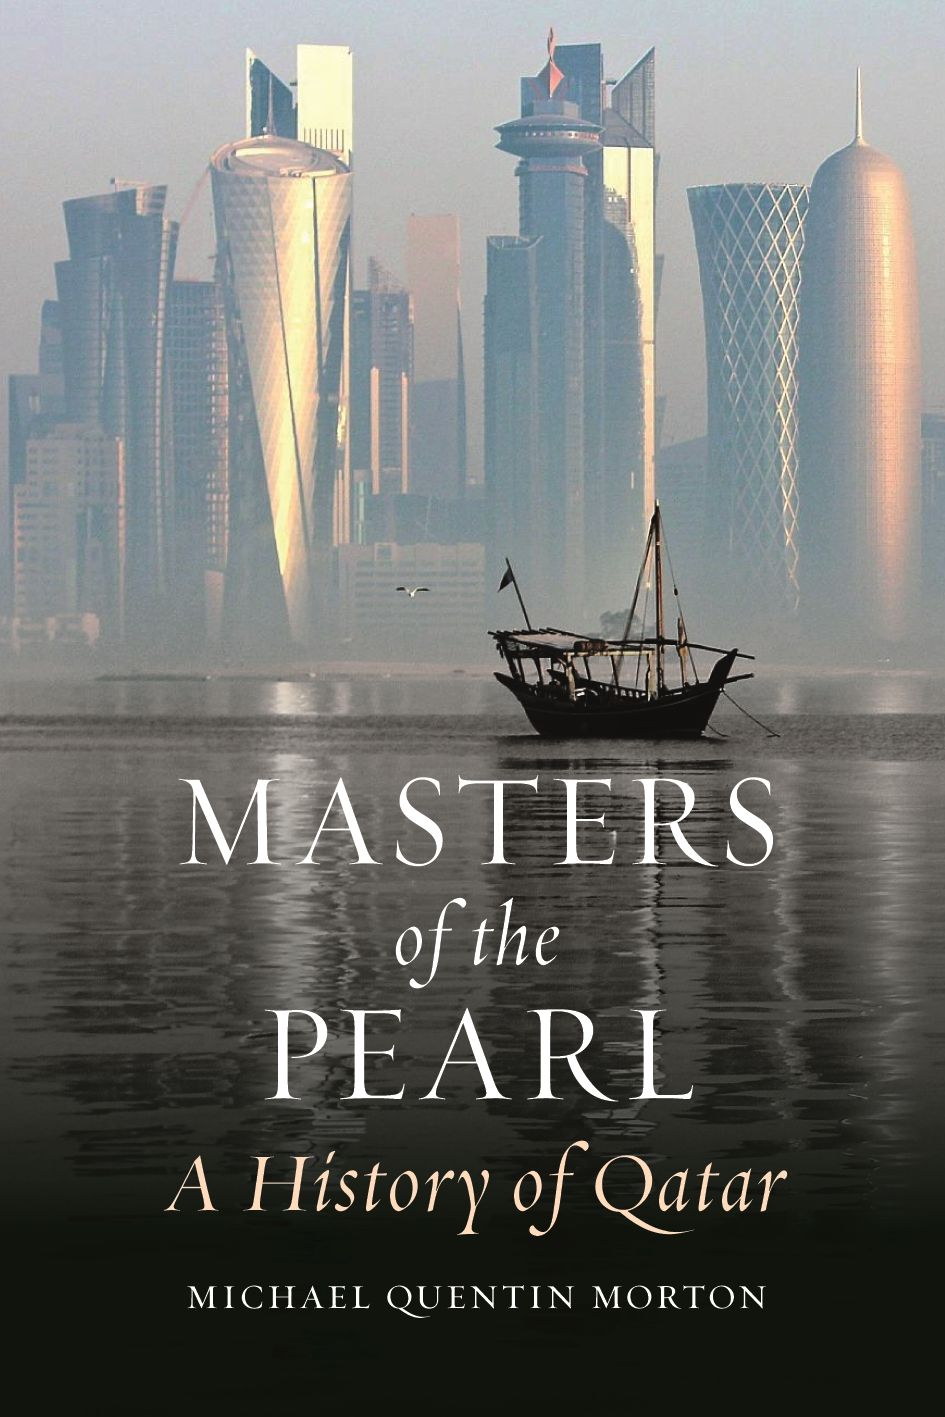 Masters of the Pearl: A History of Qatar